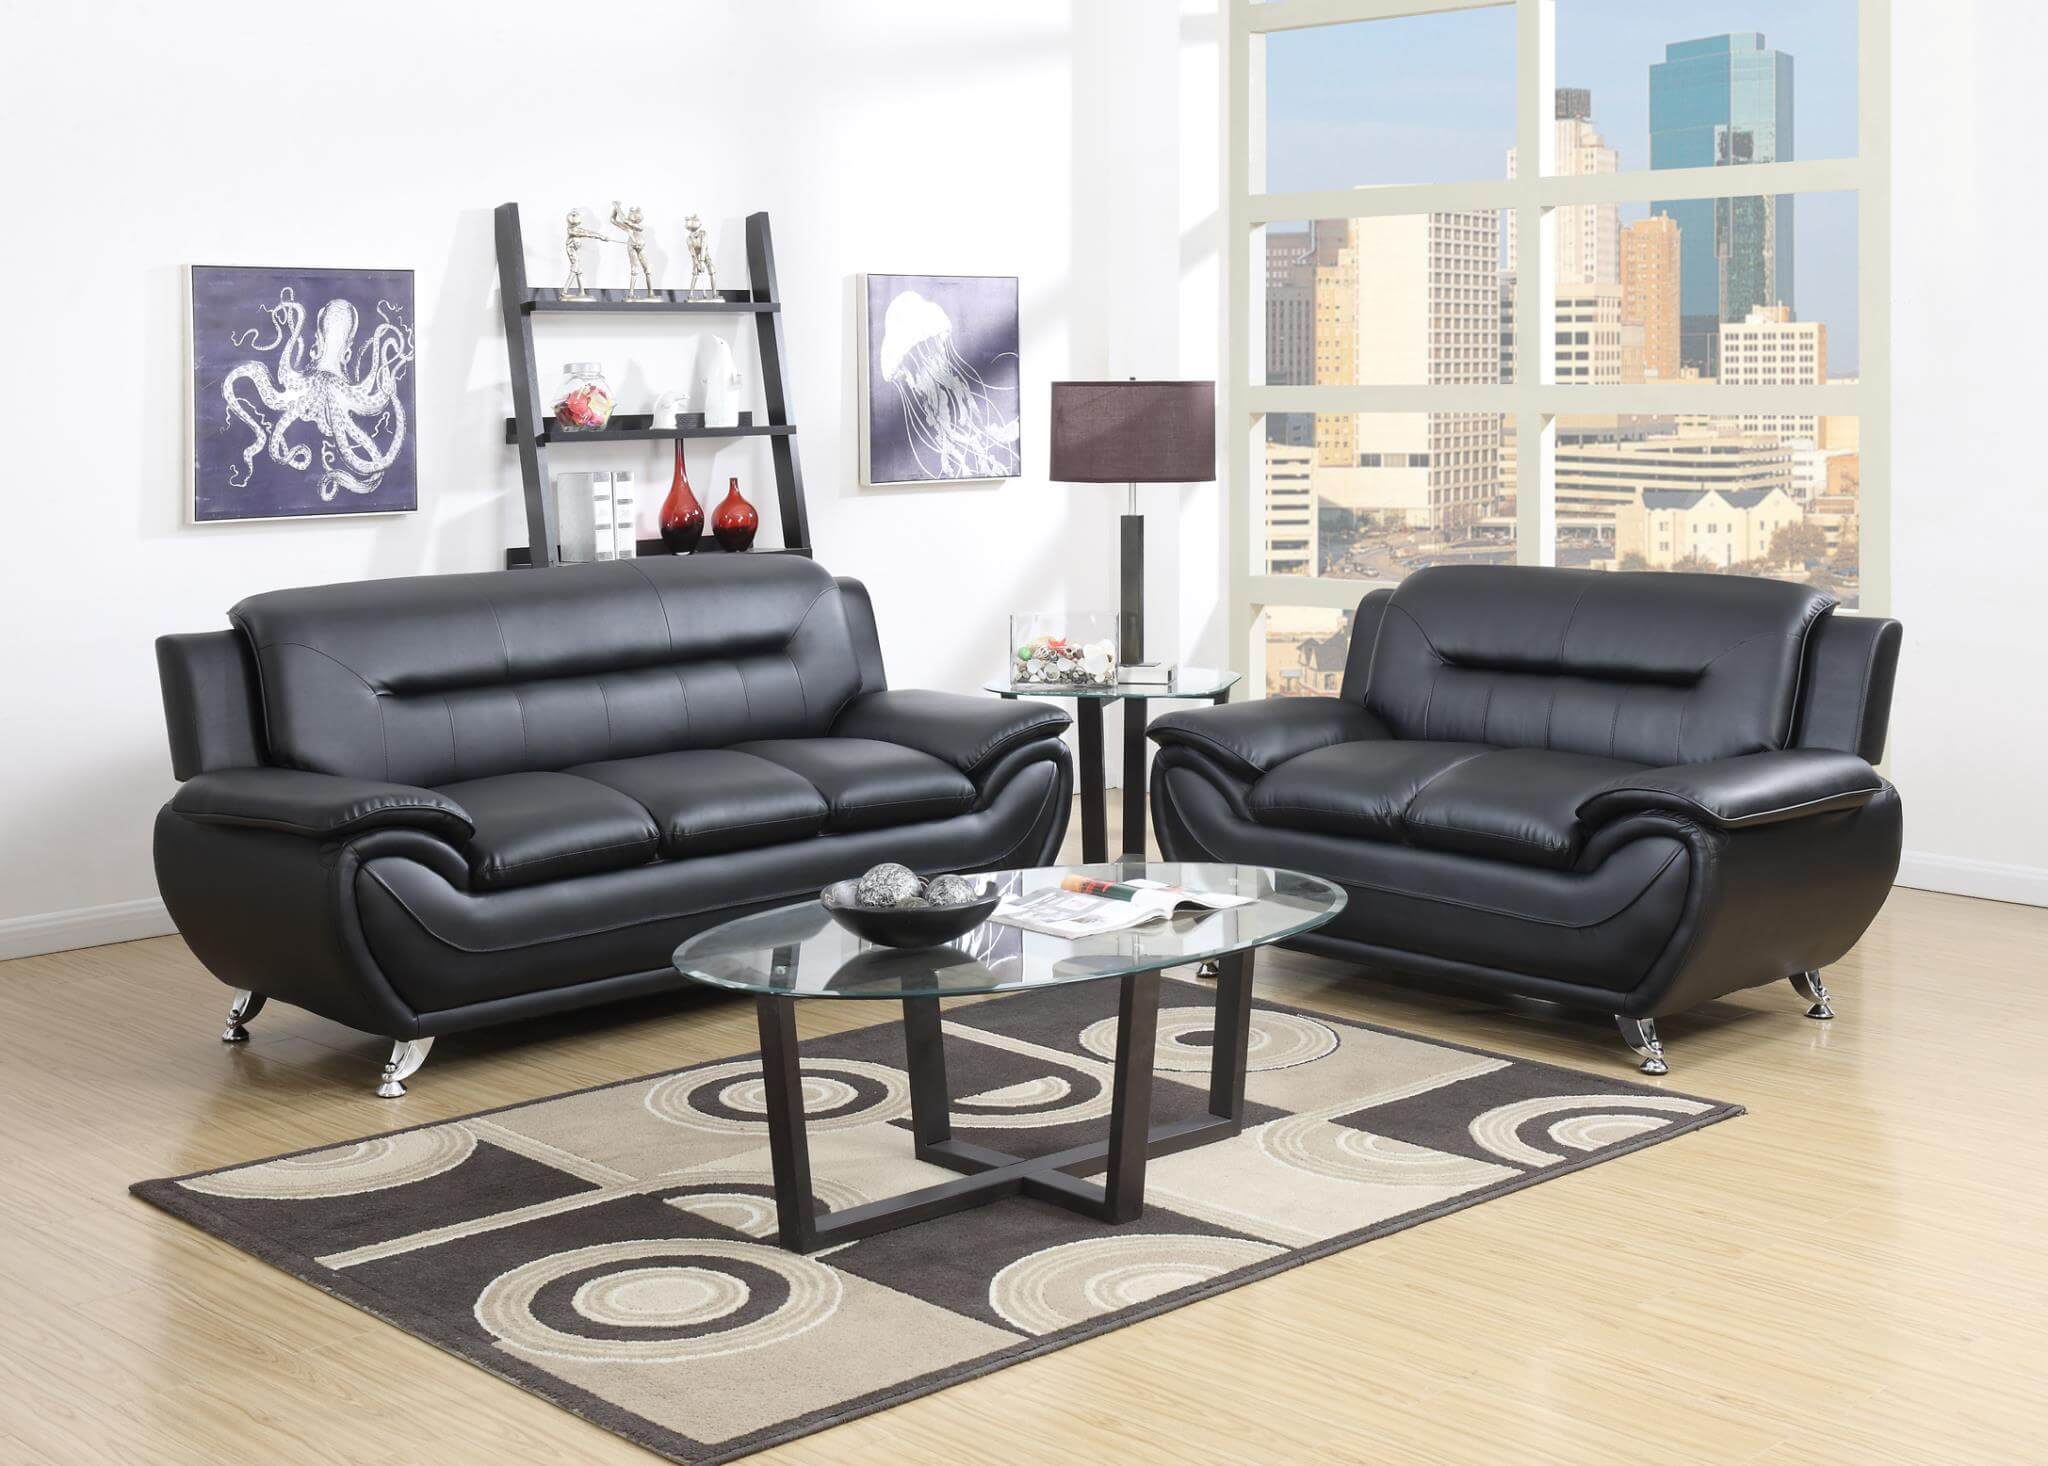 buy by linebacker durablend set durablendr open from ashley benchcraft room black living